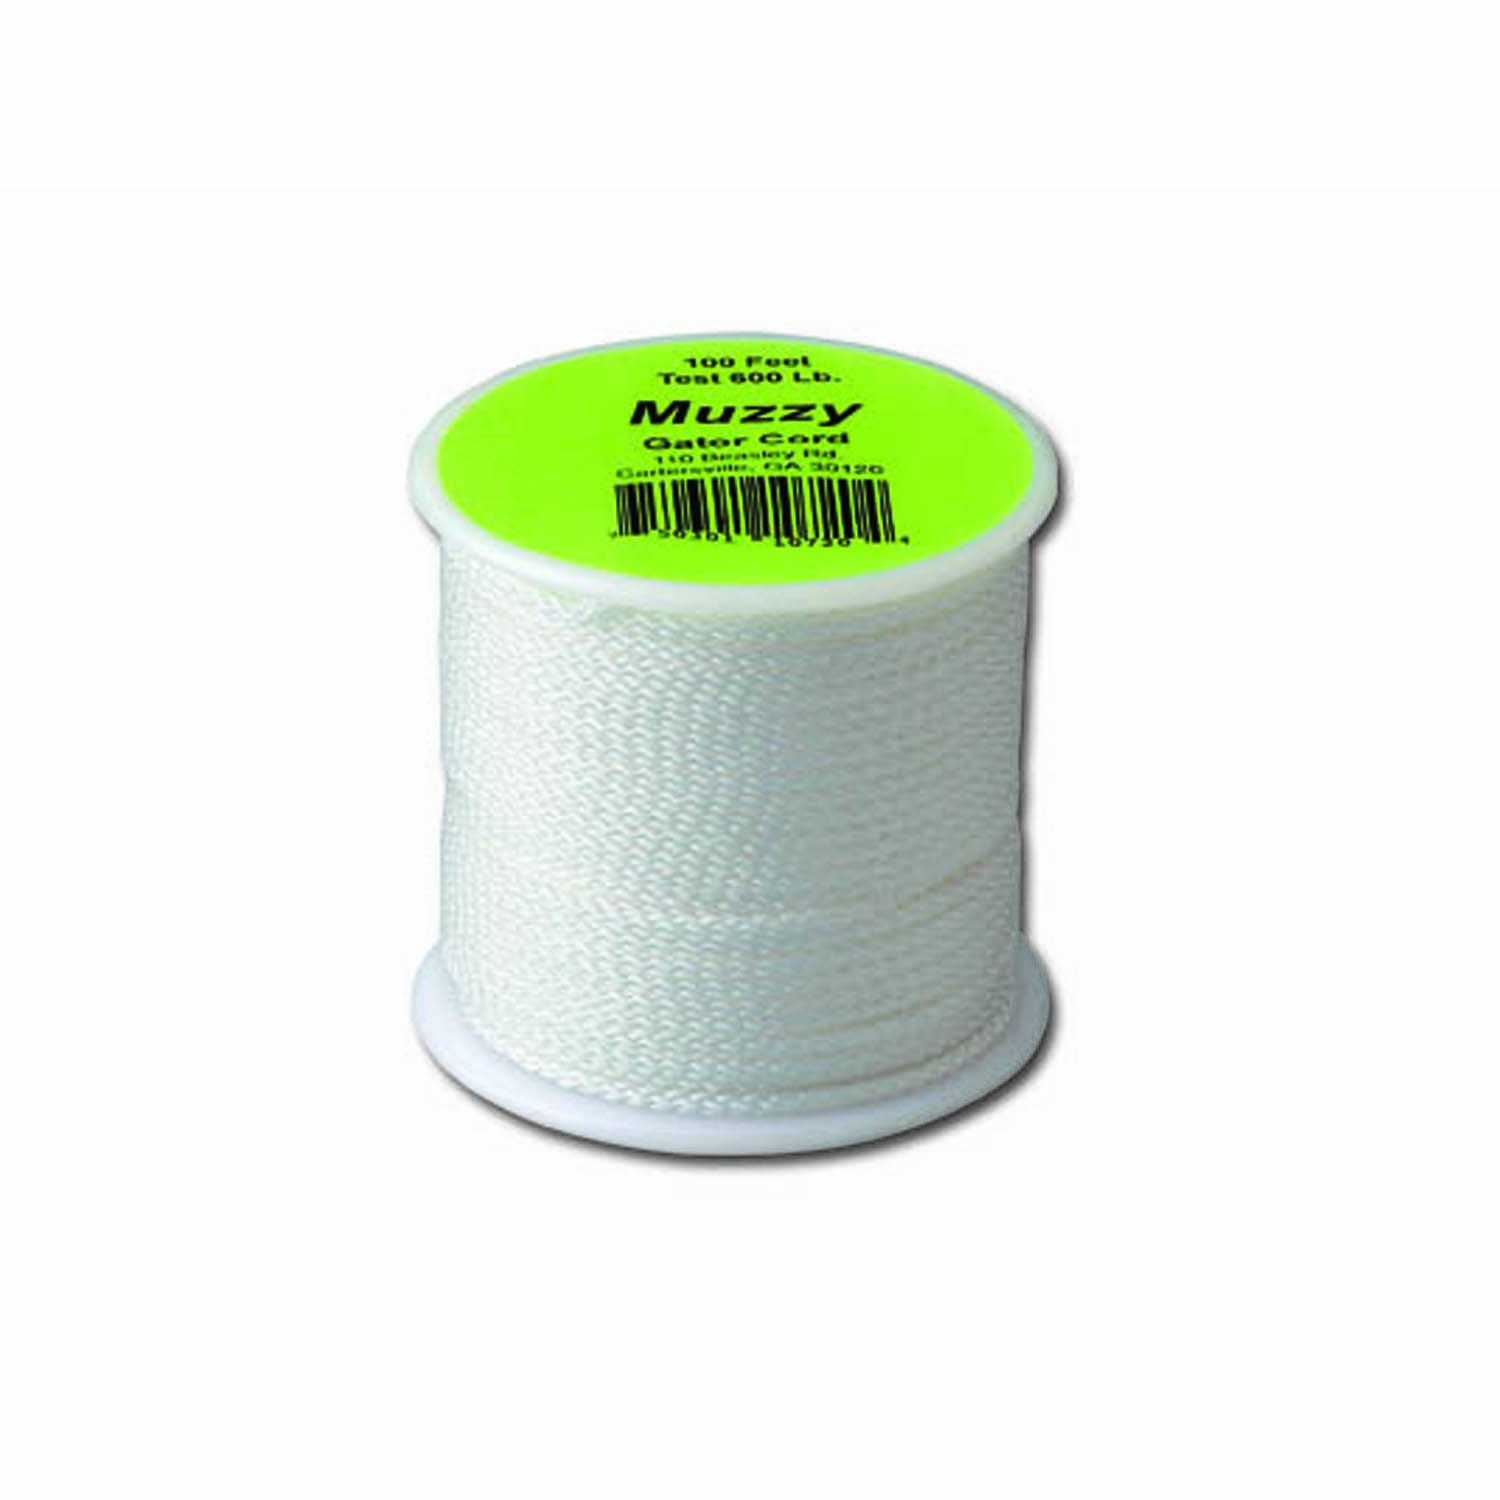 Muzzy Bowfishing 1072 Brownell 600# Gator Cord, 100 ft.